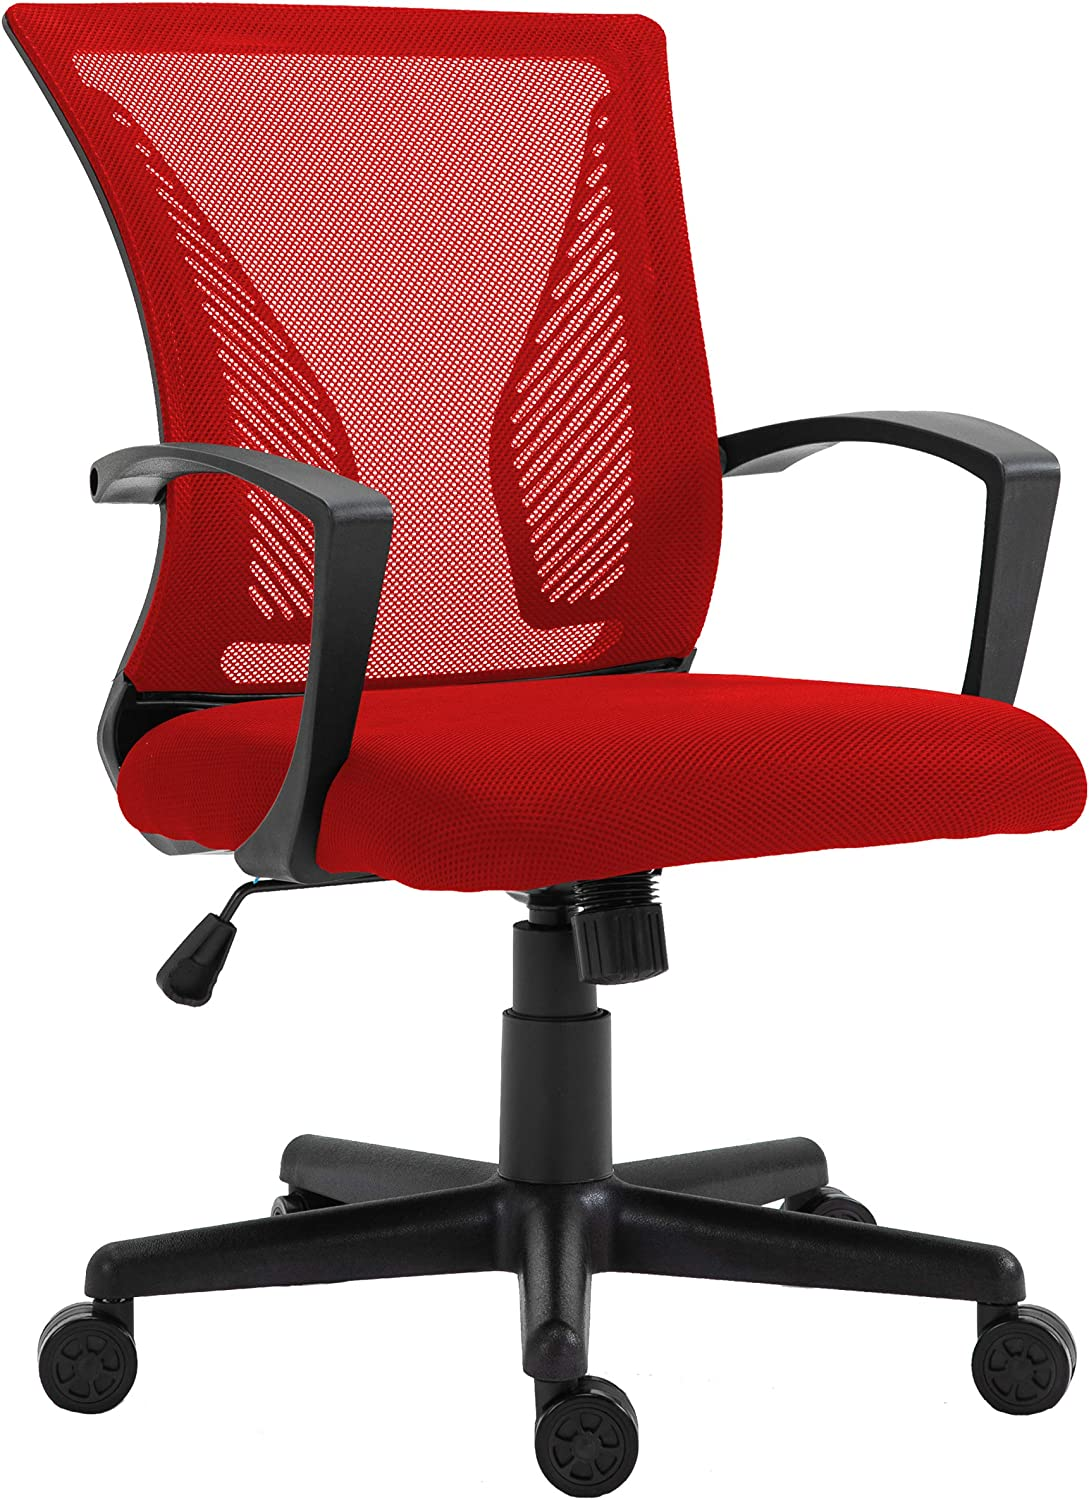 HALTER Desk Chair - Red Gaming Mesh Chair - Adjustable and Comfortable Ergonomic Chair with Armrests and Wing Lumbar Support - Ideal Gaming or Home Office Chair